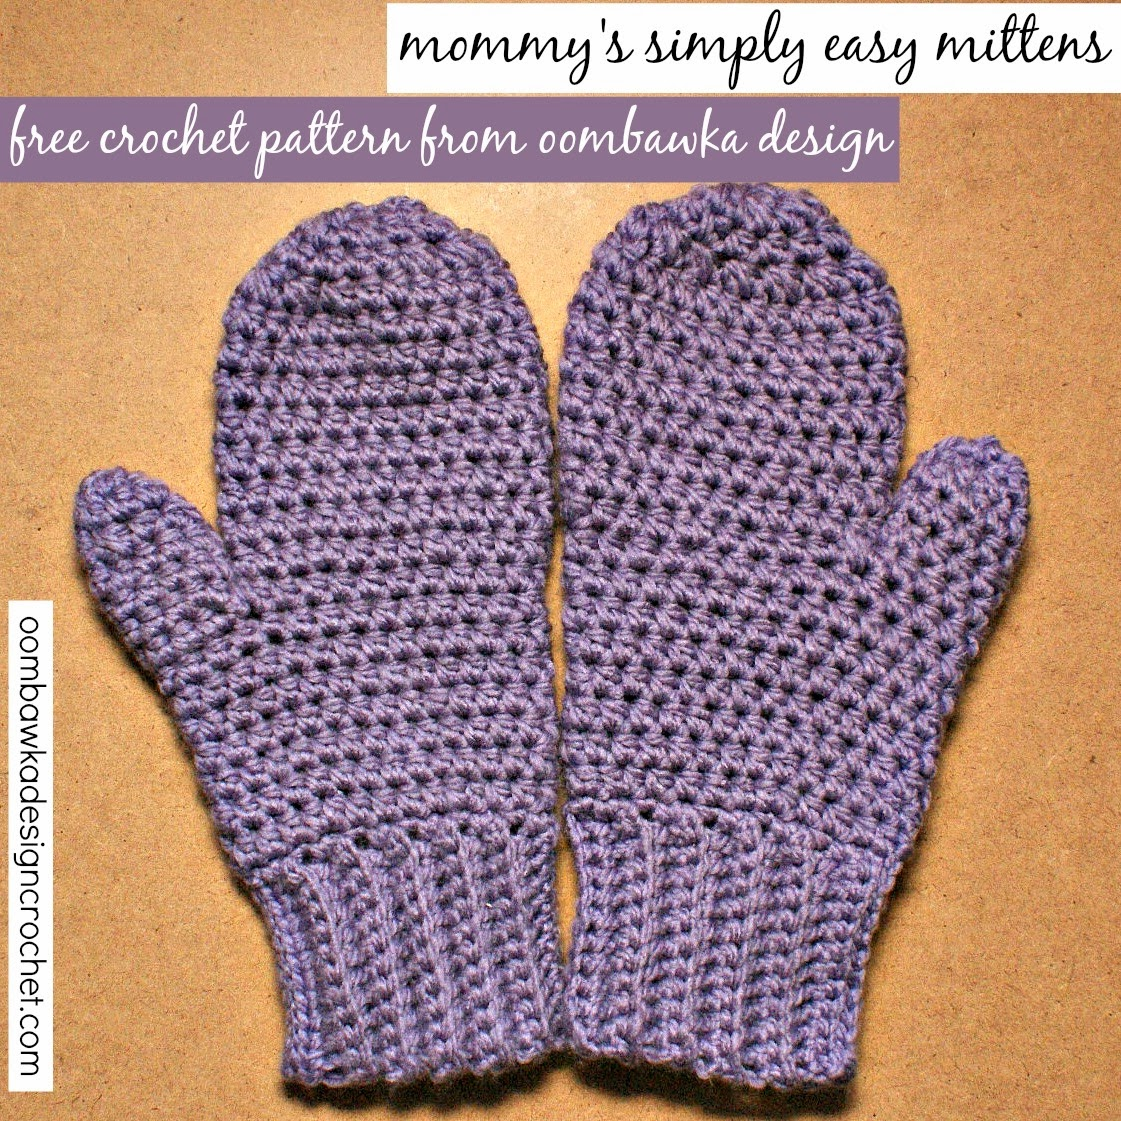 ... Simply Easy Mittens – Free Pattern • Oombawka Design Crochet